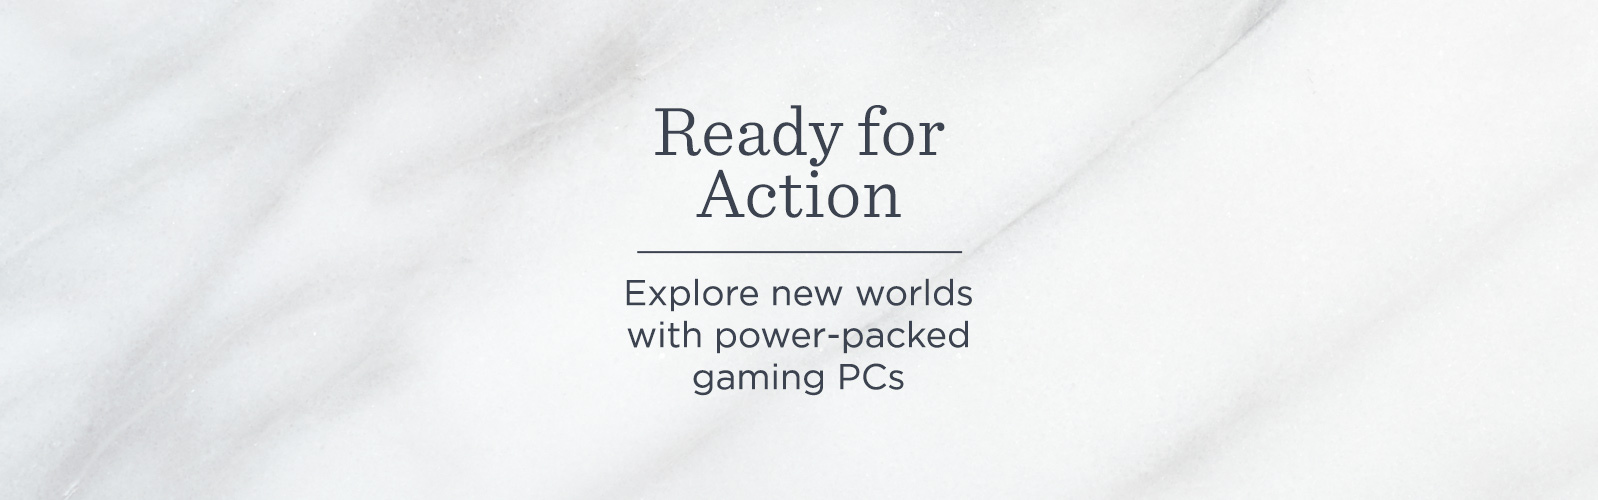 Ready for Action.  Explore new worlds with power-packed gaming PCs